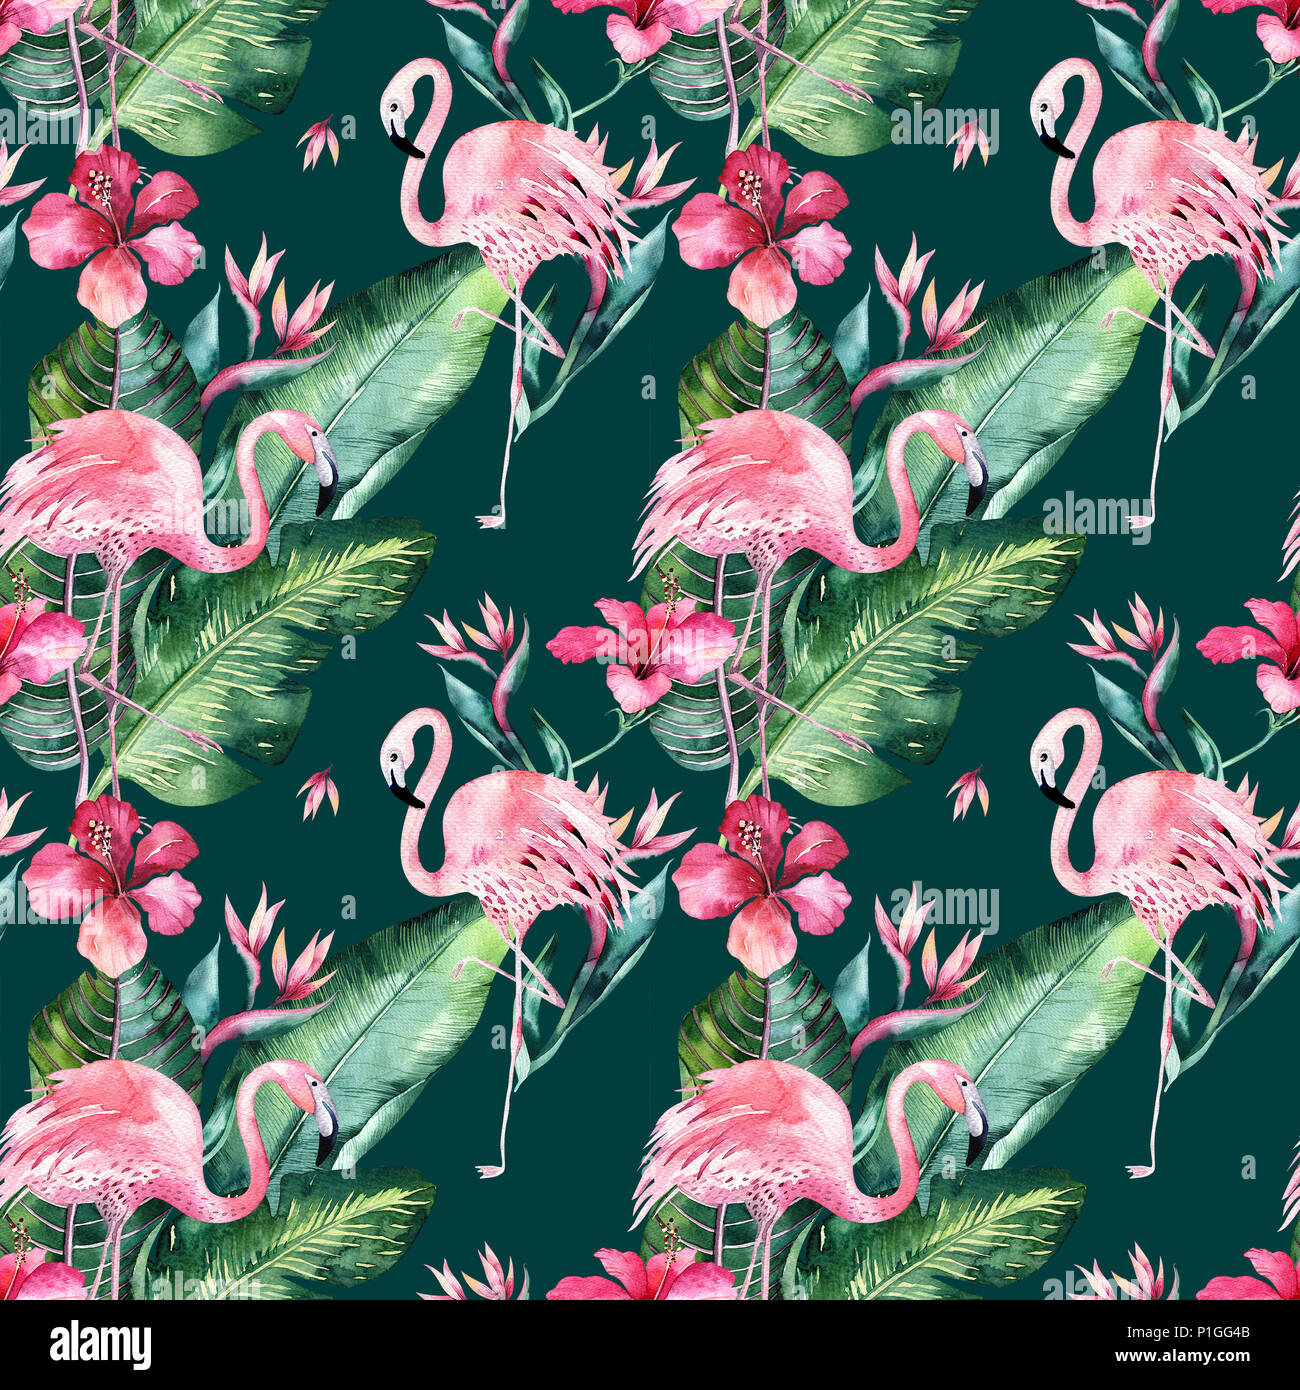 Tropical Seamless Floral Summer Pattern Background With Tropical